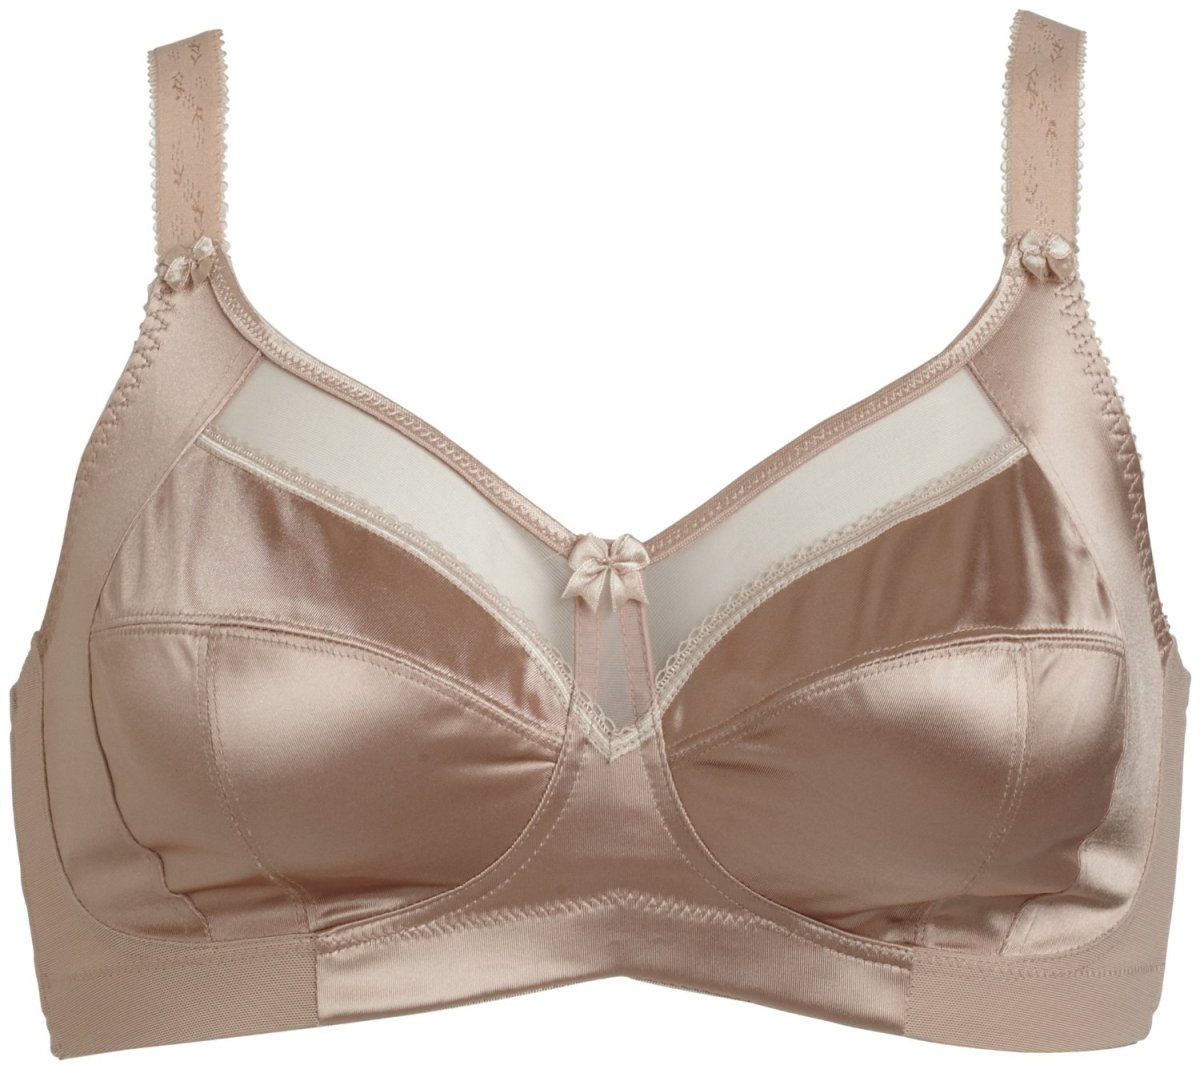 504e8bdefc261 DDD Bras  Best Triple D Bras and Where to Find Them